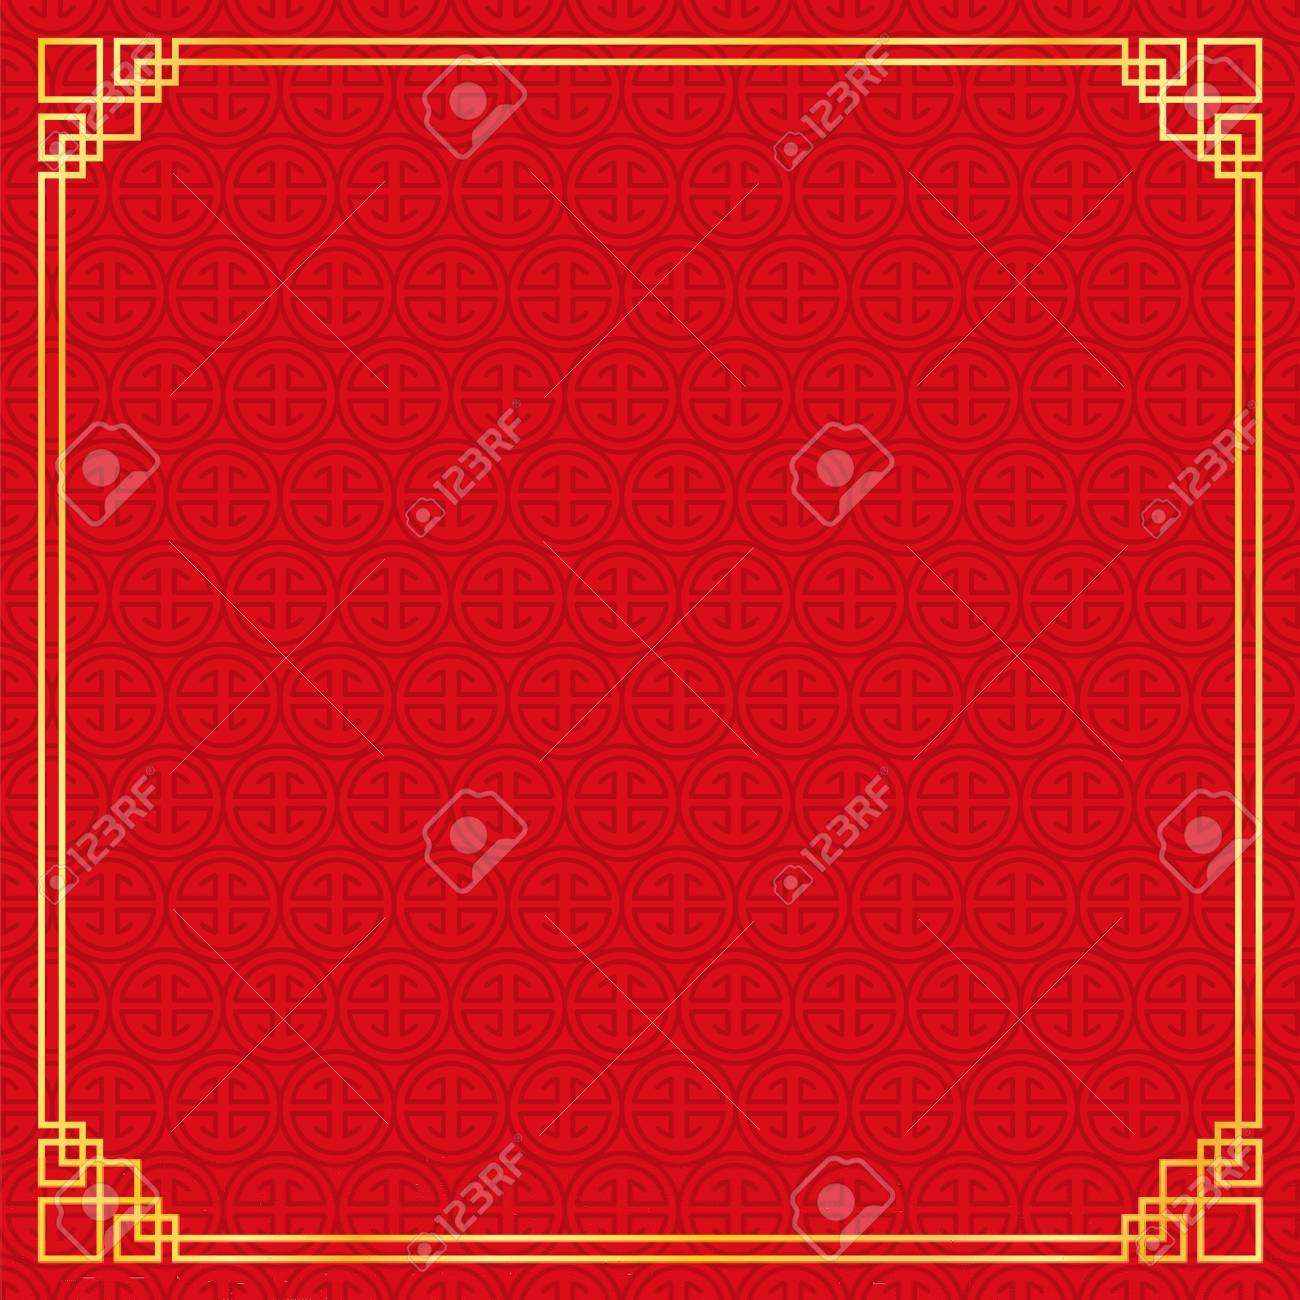 chinese new year background abstract oriental wallpaper red circle pattern inspiration vector illustration